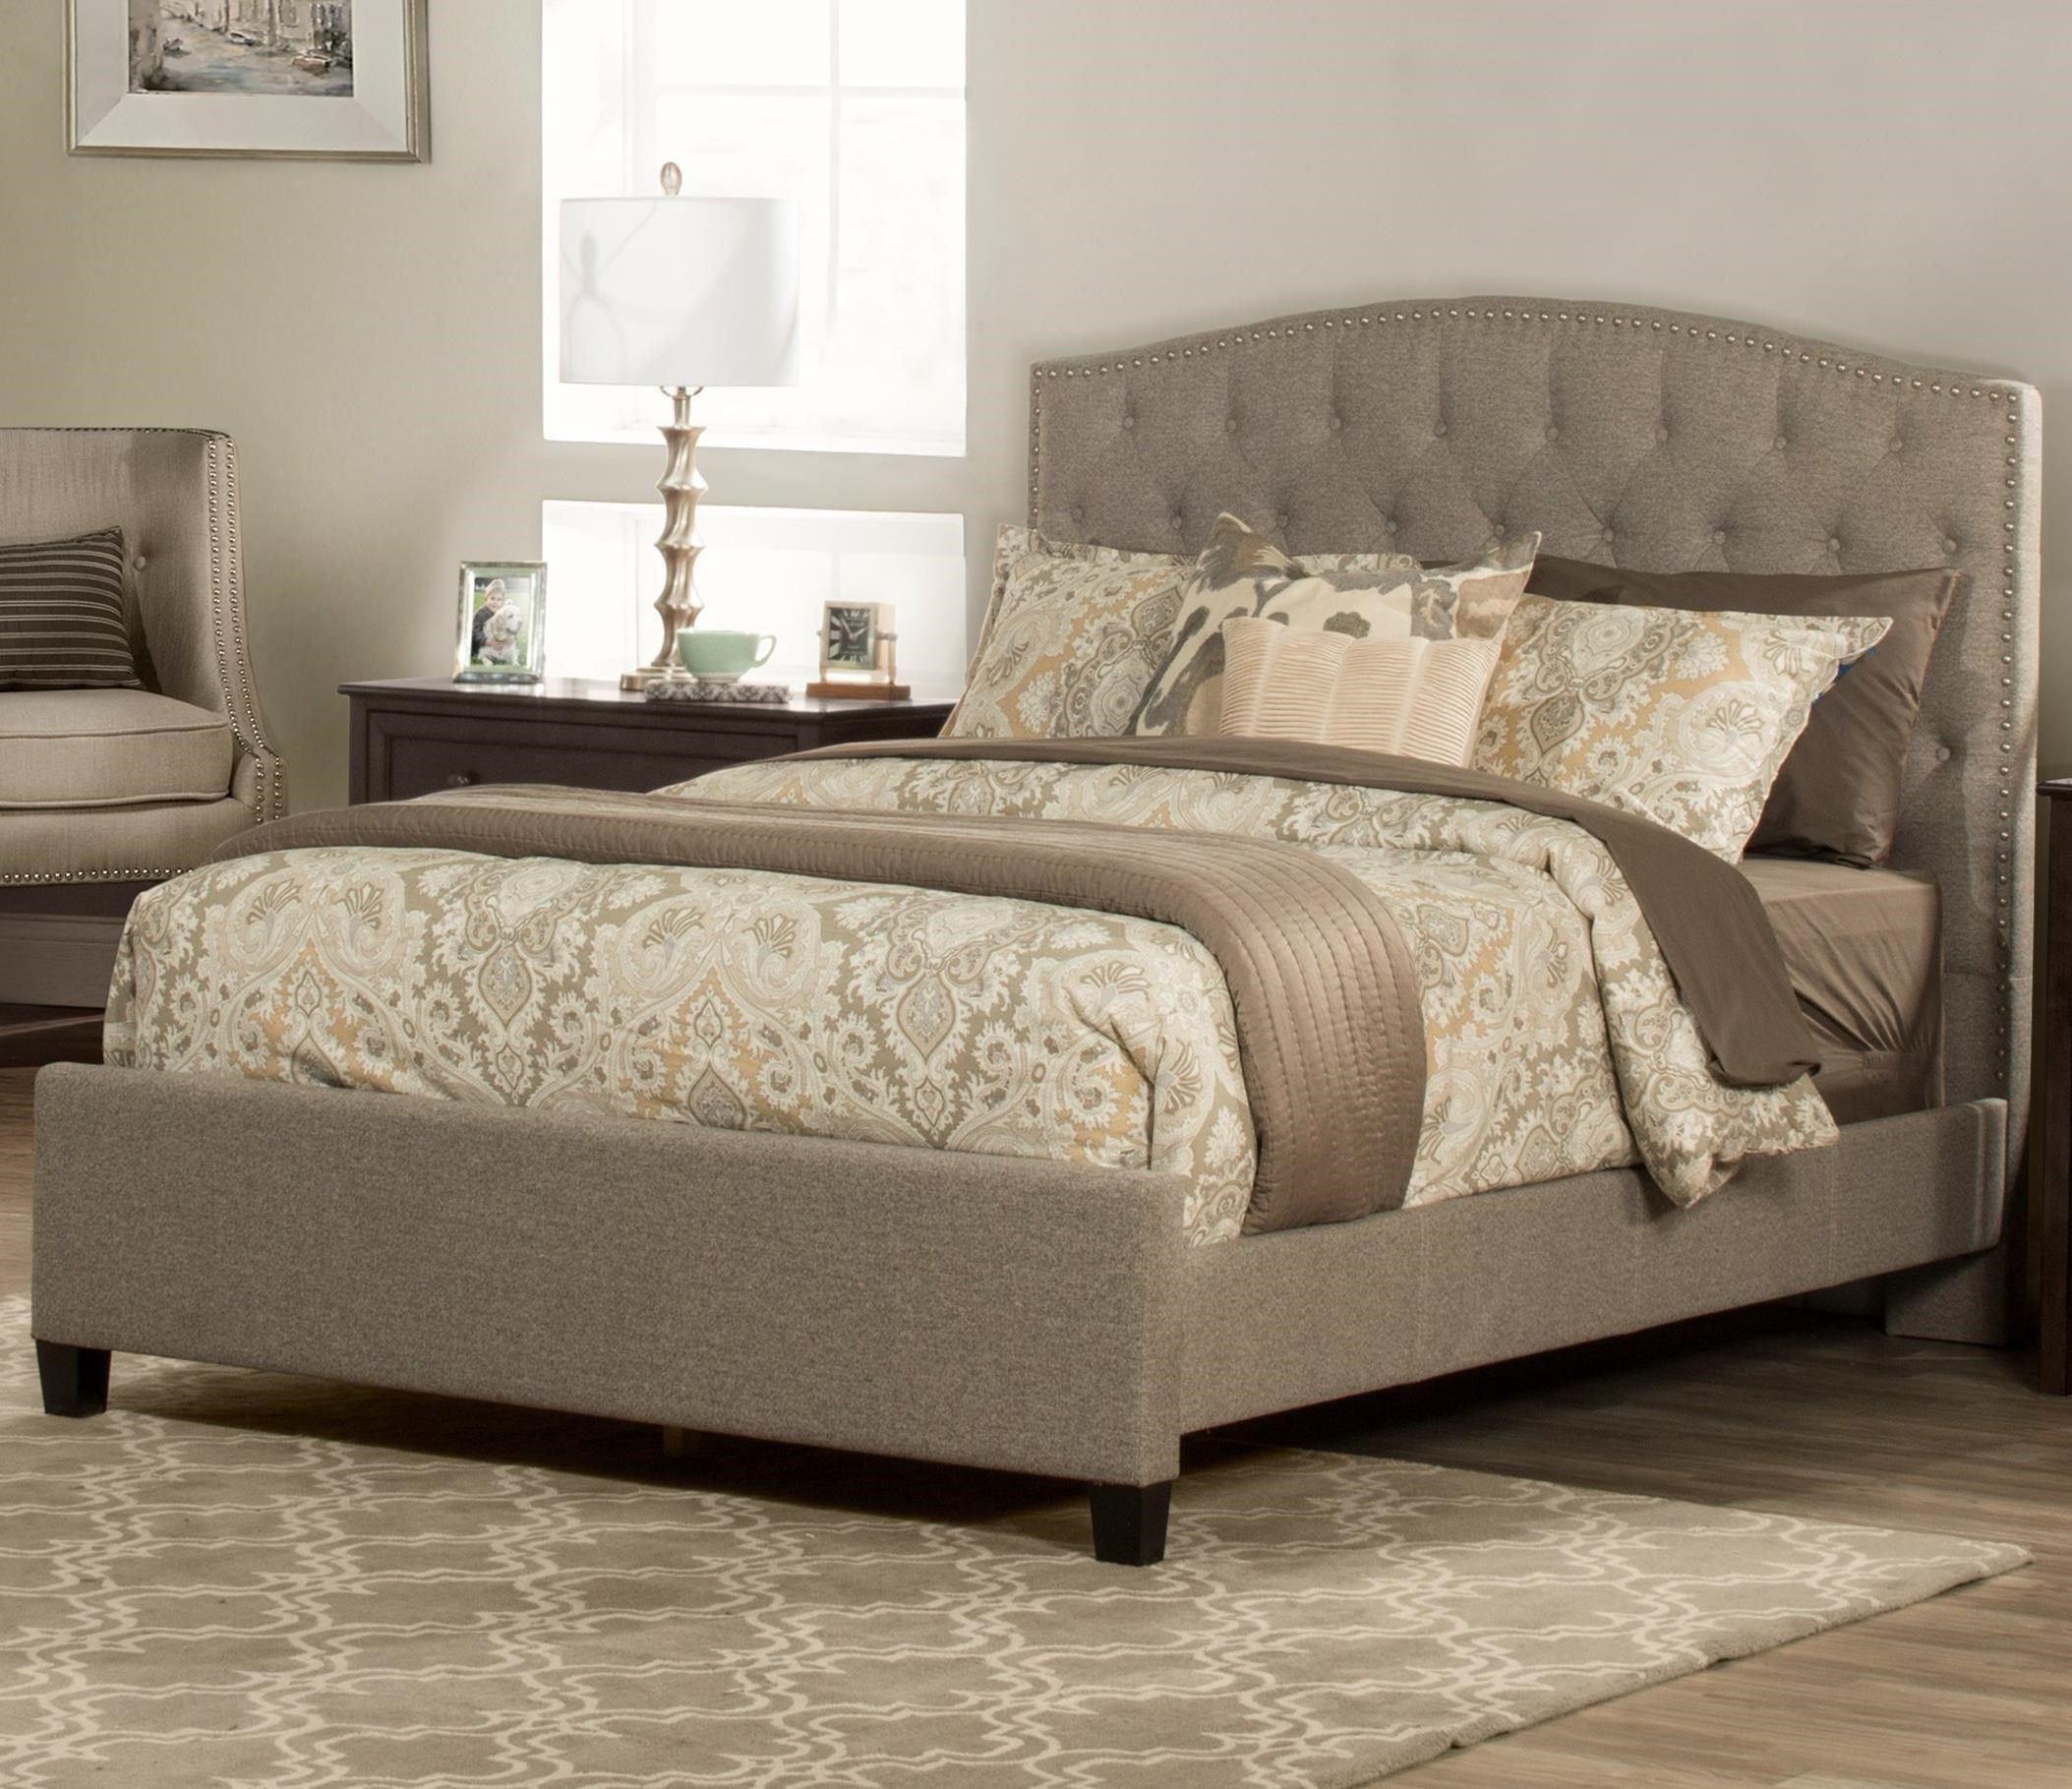 Lila King Upholstered Bed By Hillsdale At Becker Furniture King Upholstered Bed Upholstered Beds Queen Upholstered Bed